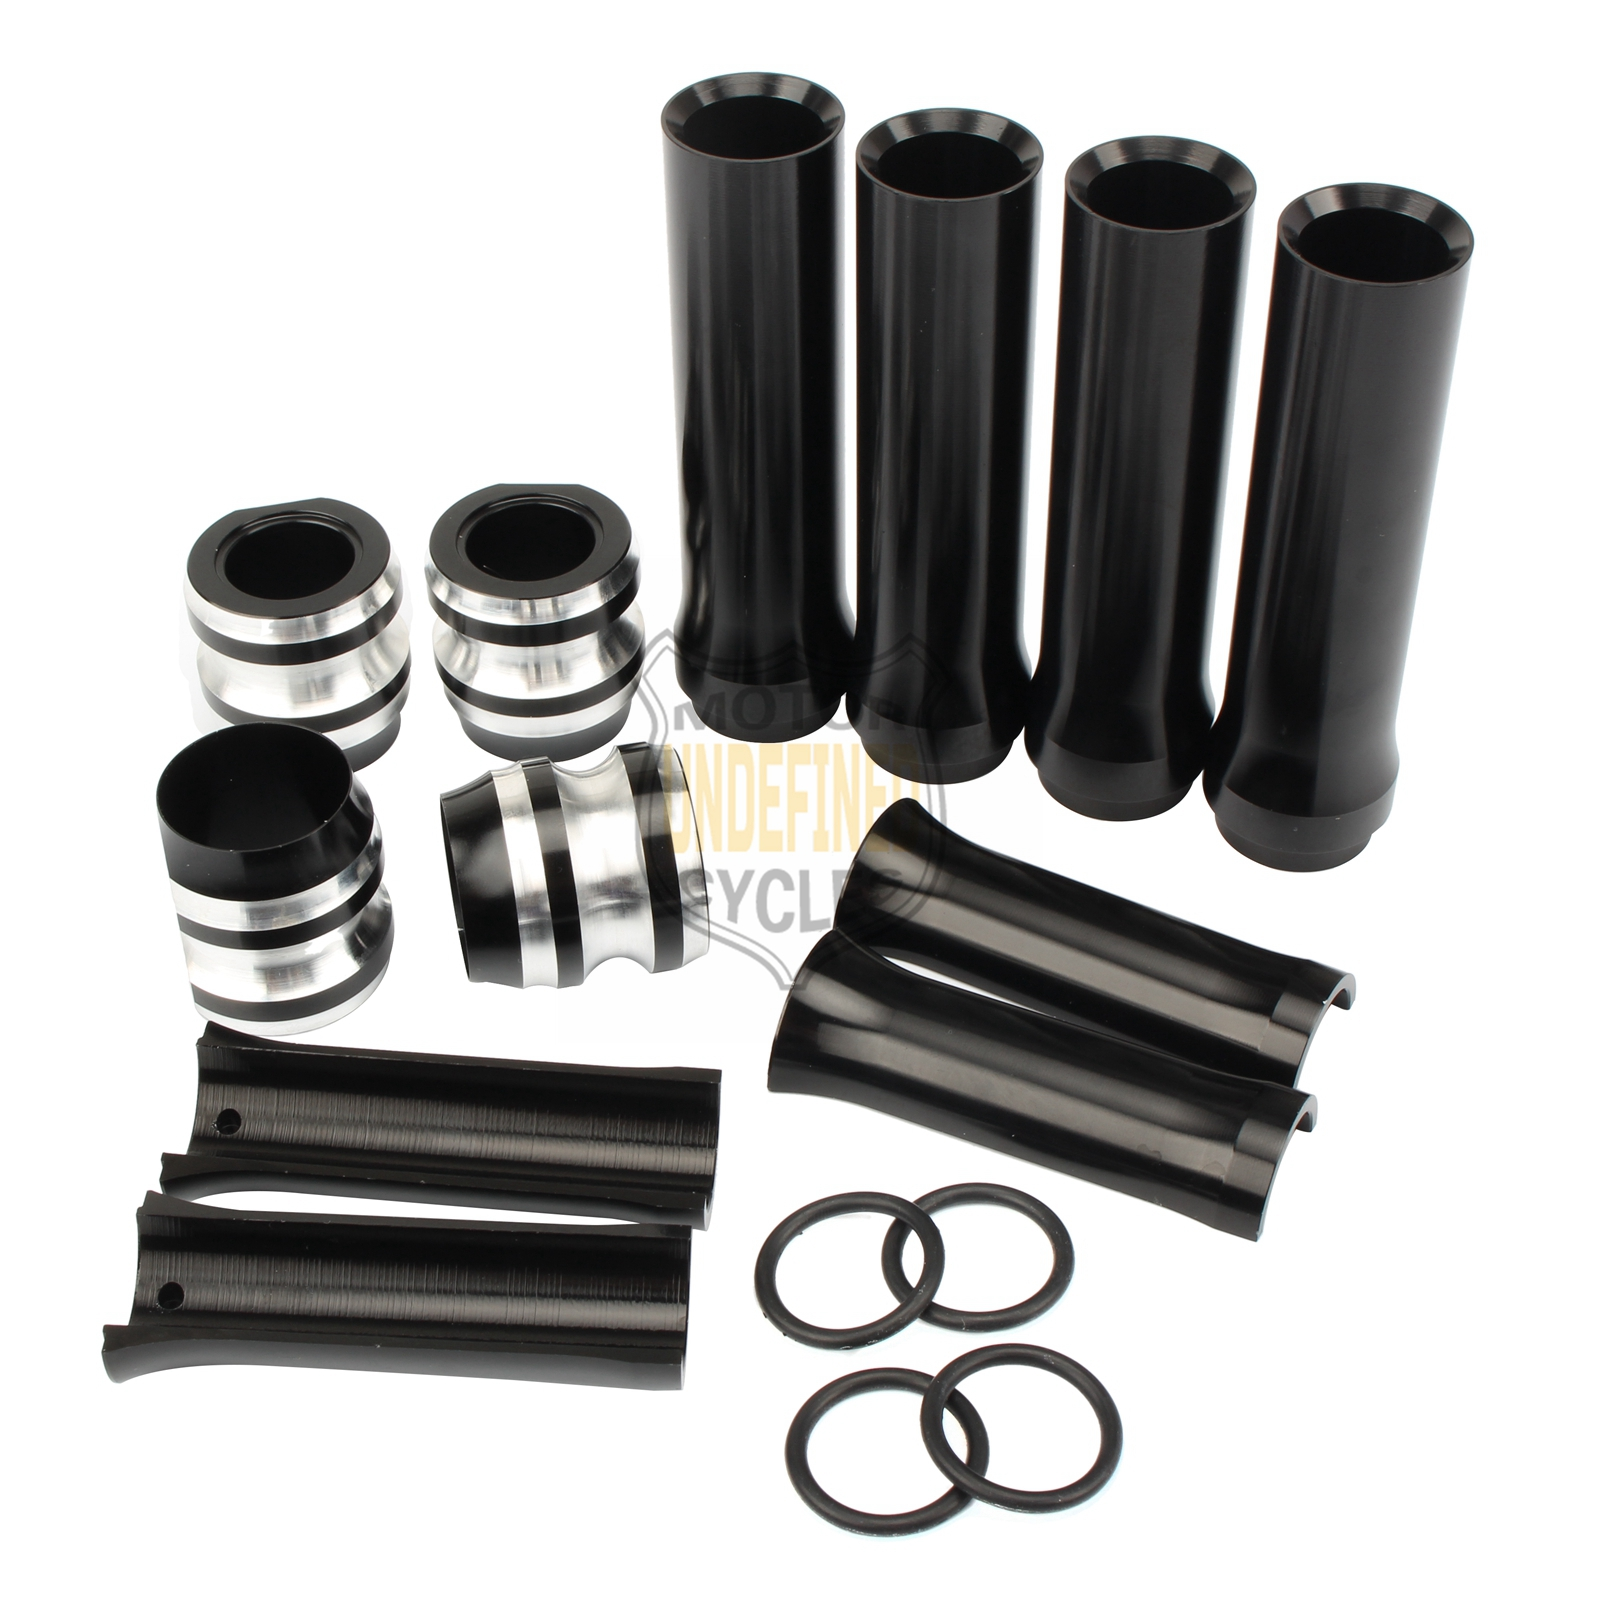 Cam Tube details about cnc black pushrod tube covers lower set for harley twin cam touring 1999-2017